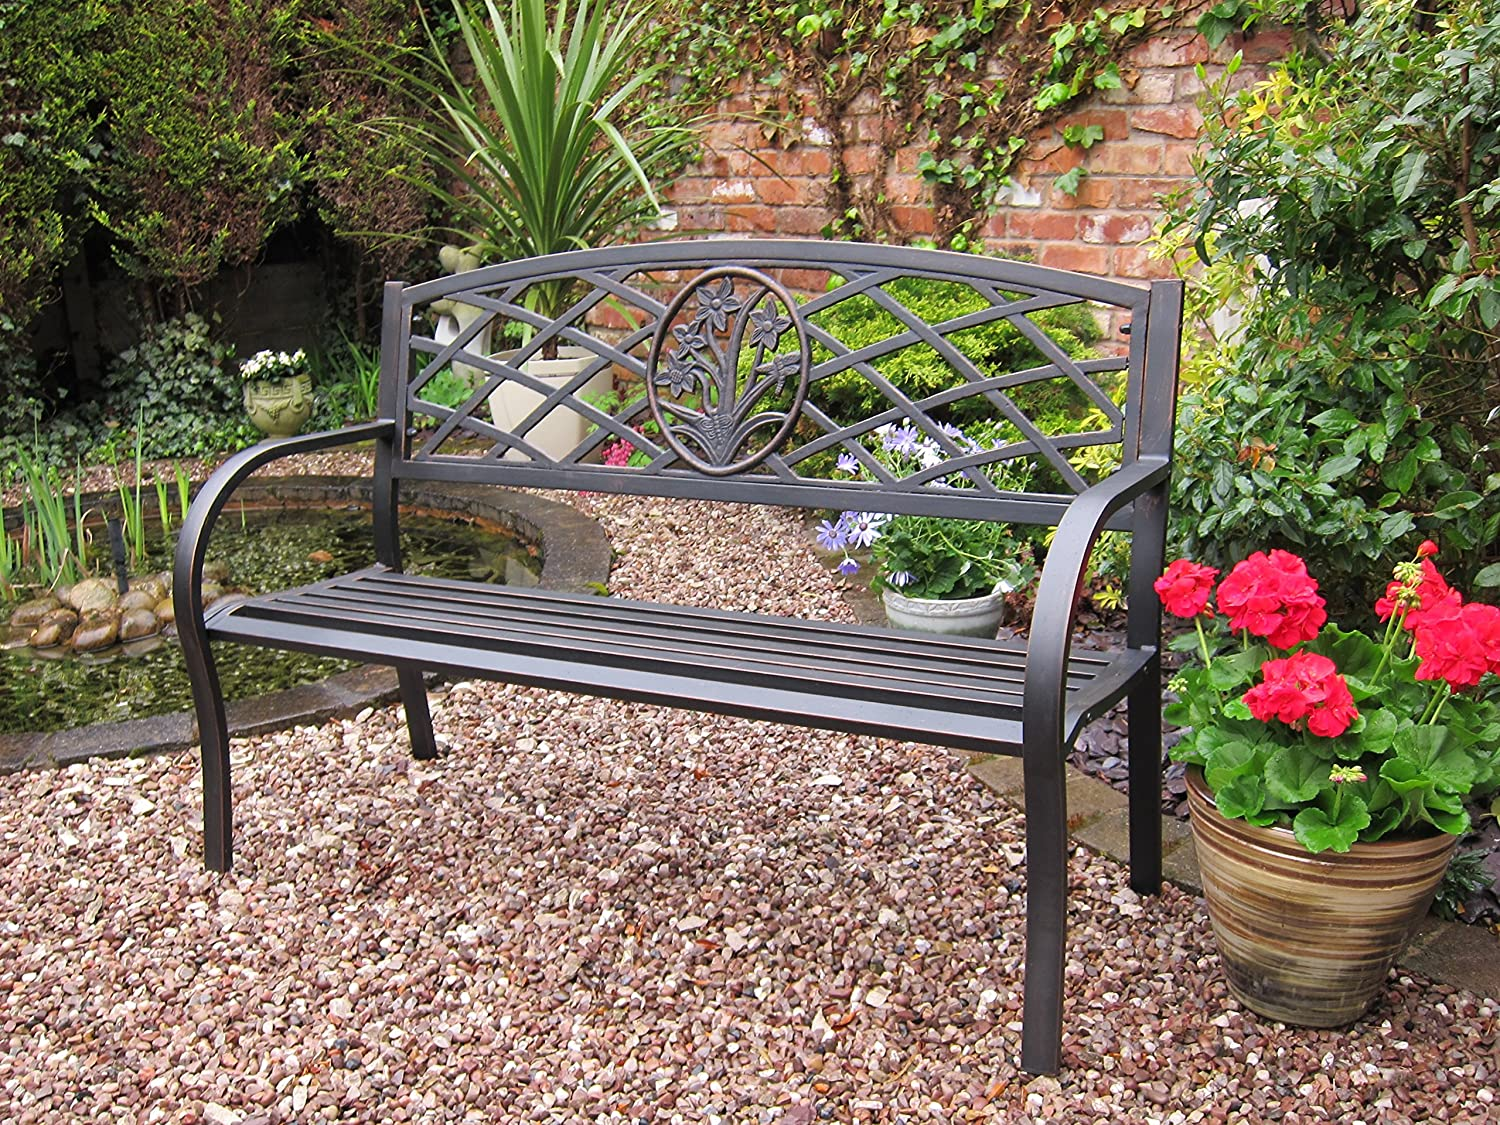 Rondeau Leisure Quality Reims steel 2 Seater Black Garden Bench ...